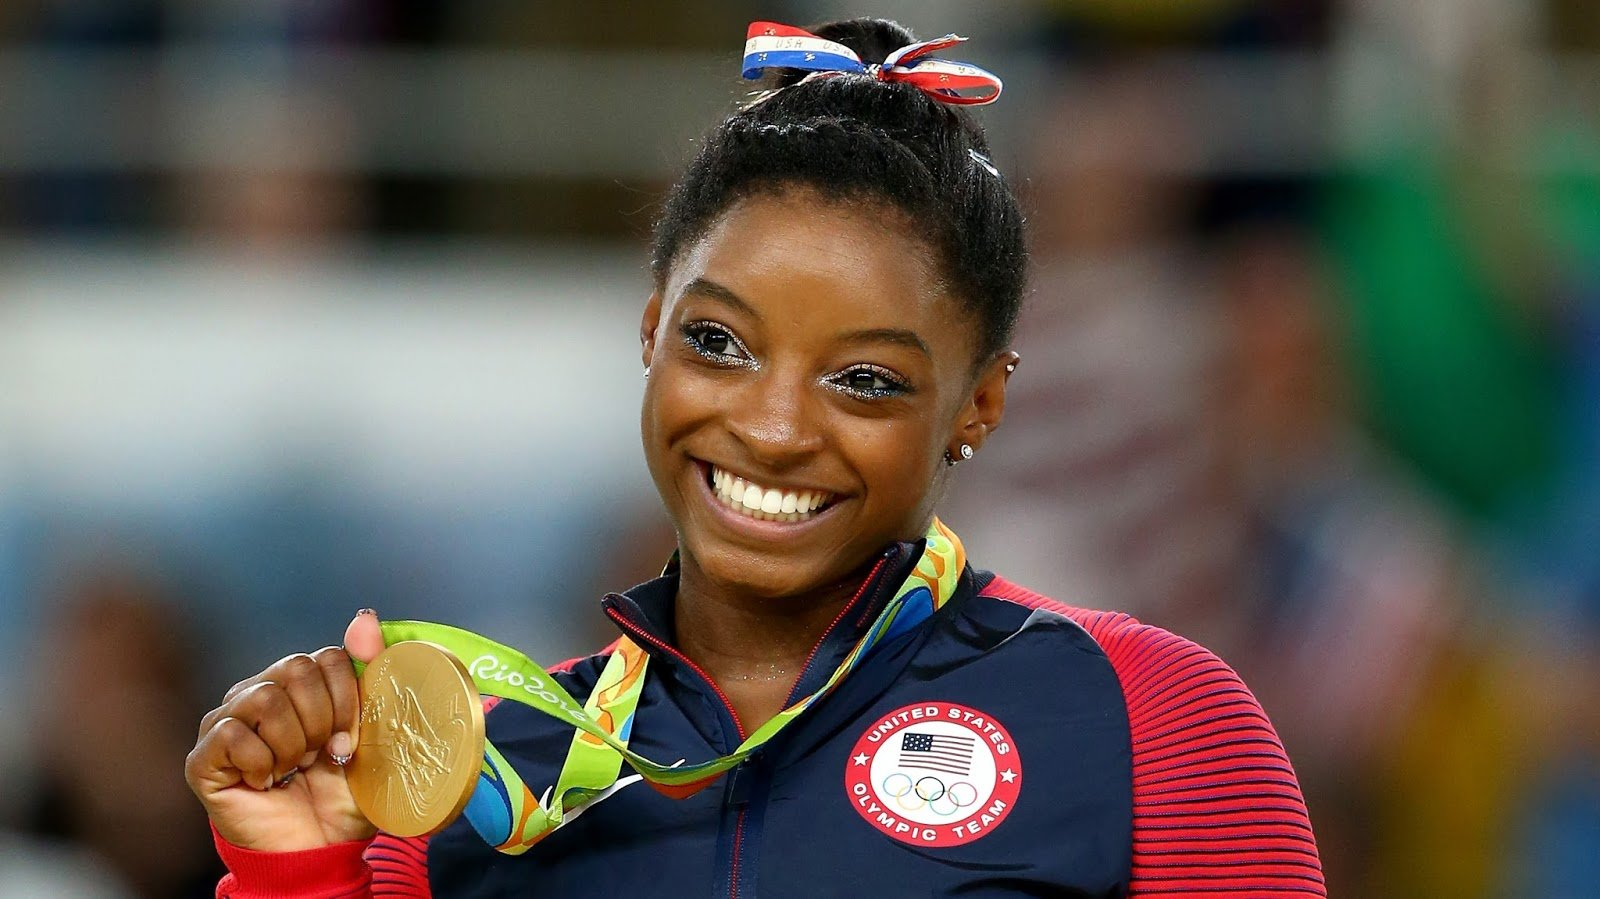 Simon Biles Is Named AP Female Athlete Of The Year